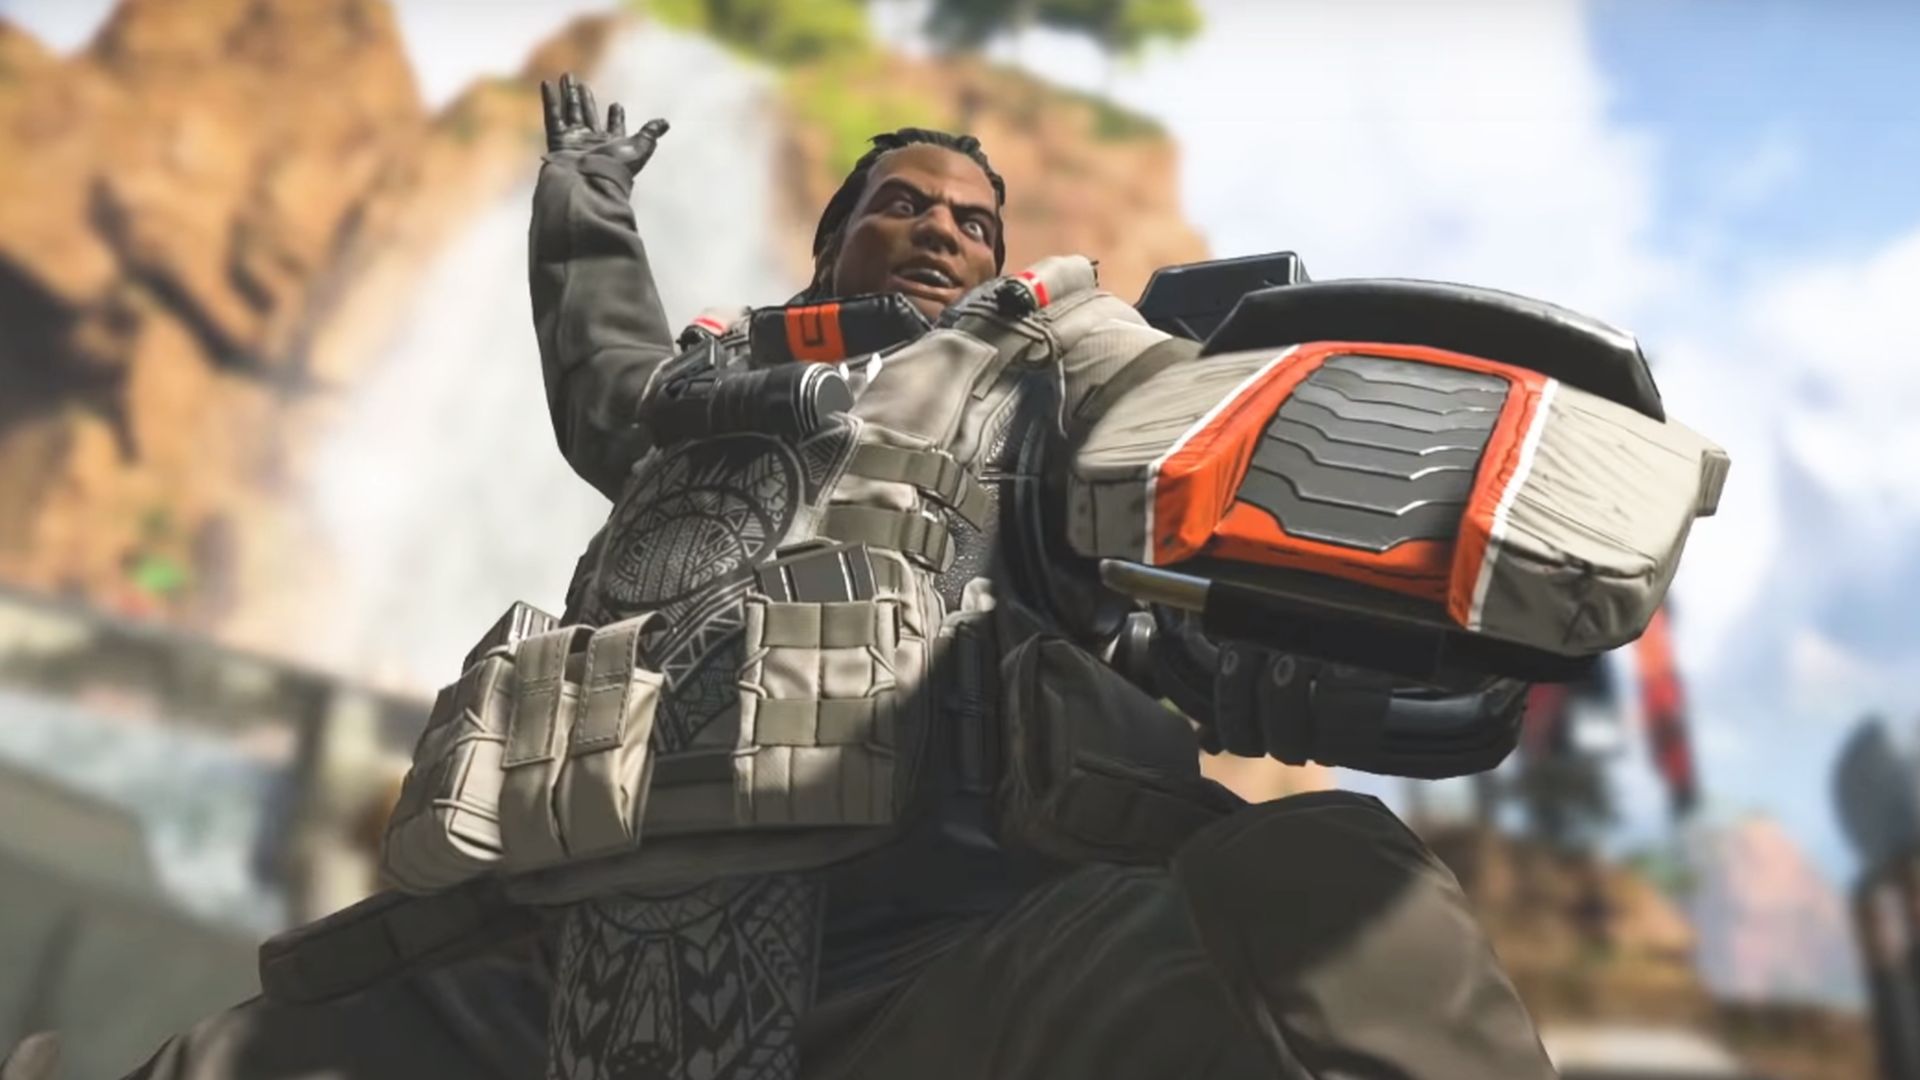 Backpack Skins H1Z1 ninja's team wins the first apex legends tournament –one